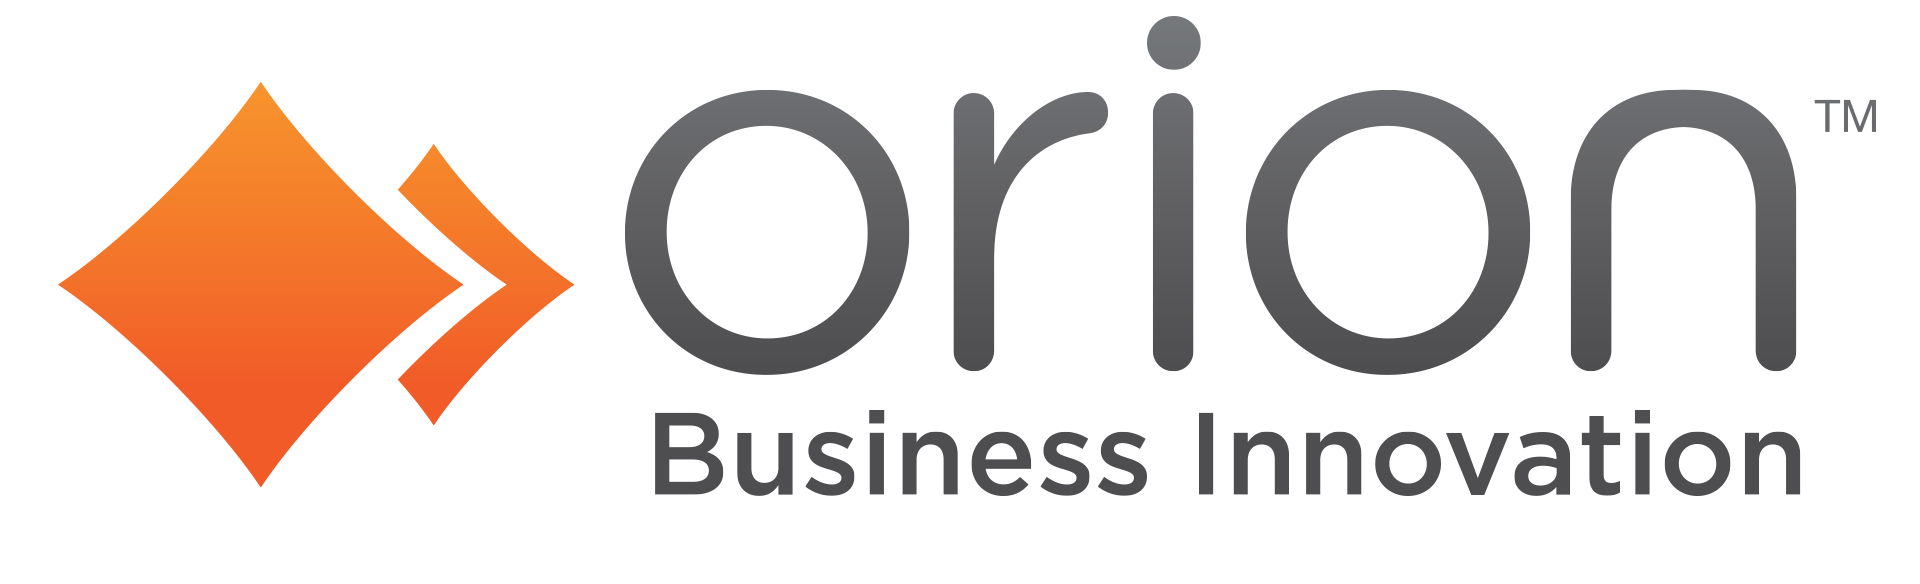 Orion Systems Integrators Logo